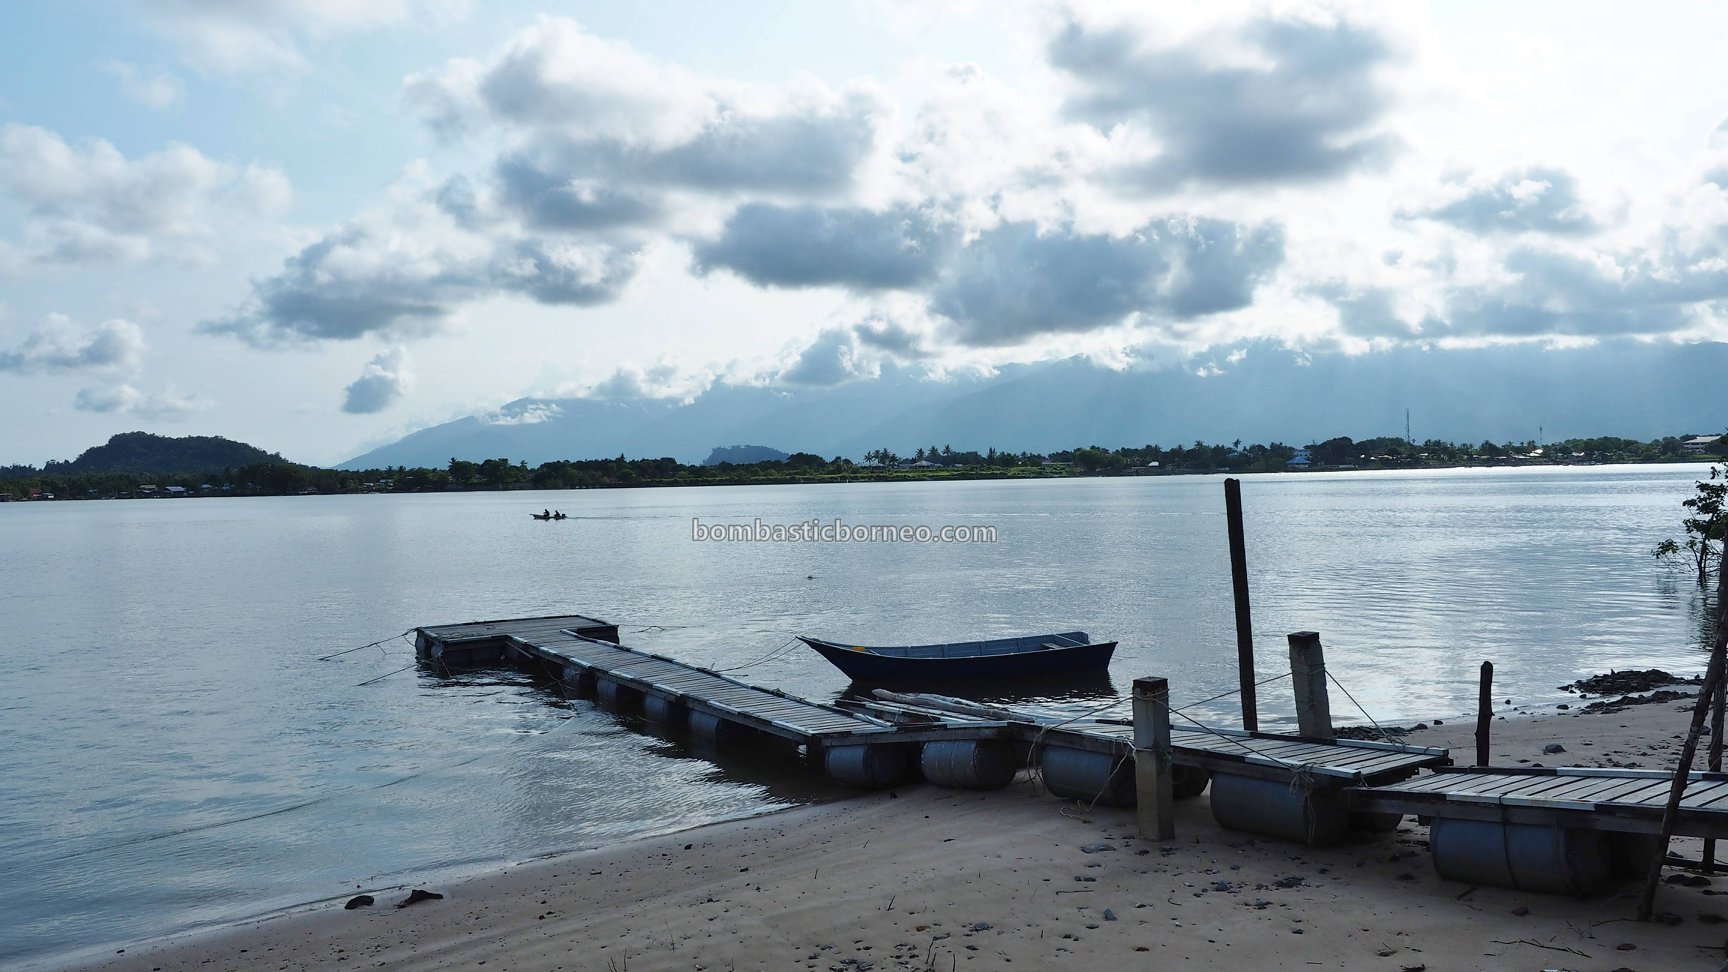 pantai, jetty, malay village, alam, nature, beachside, destination, Borneo, Kuching, Tourism, tourist attraction, travel guide, 古晋砂拉越, 马来西亚旅游